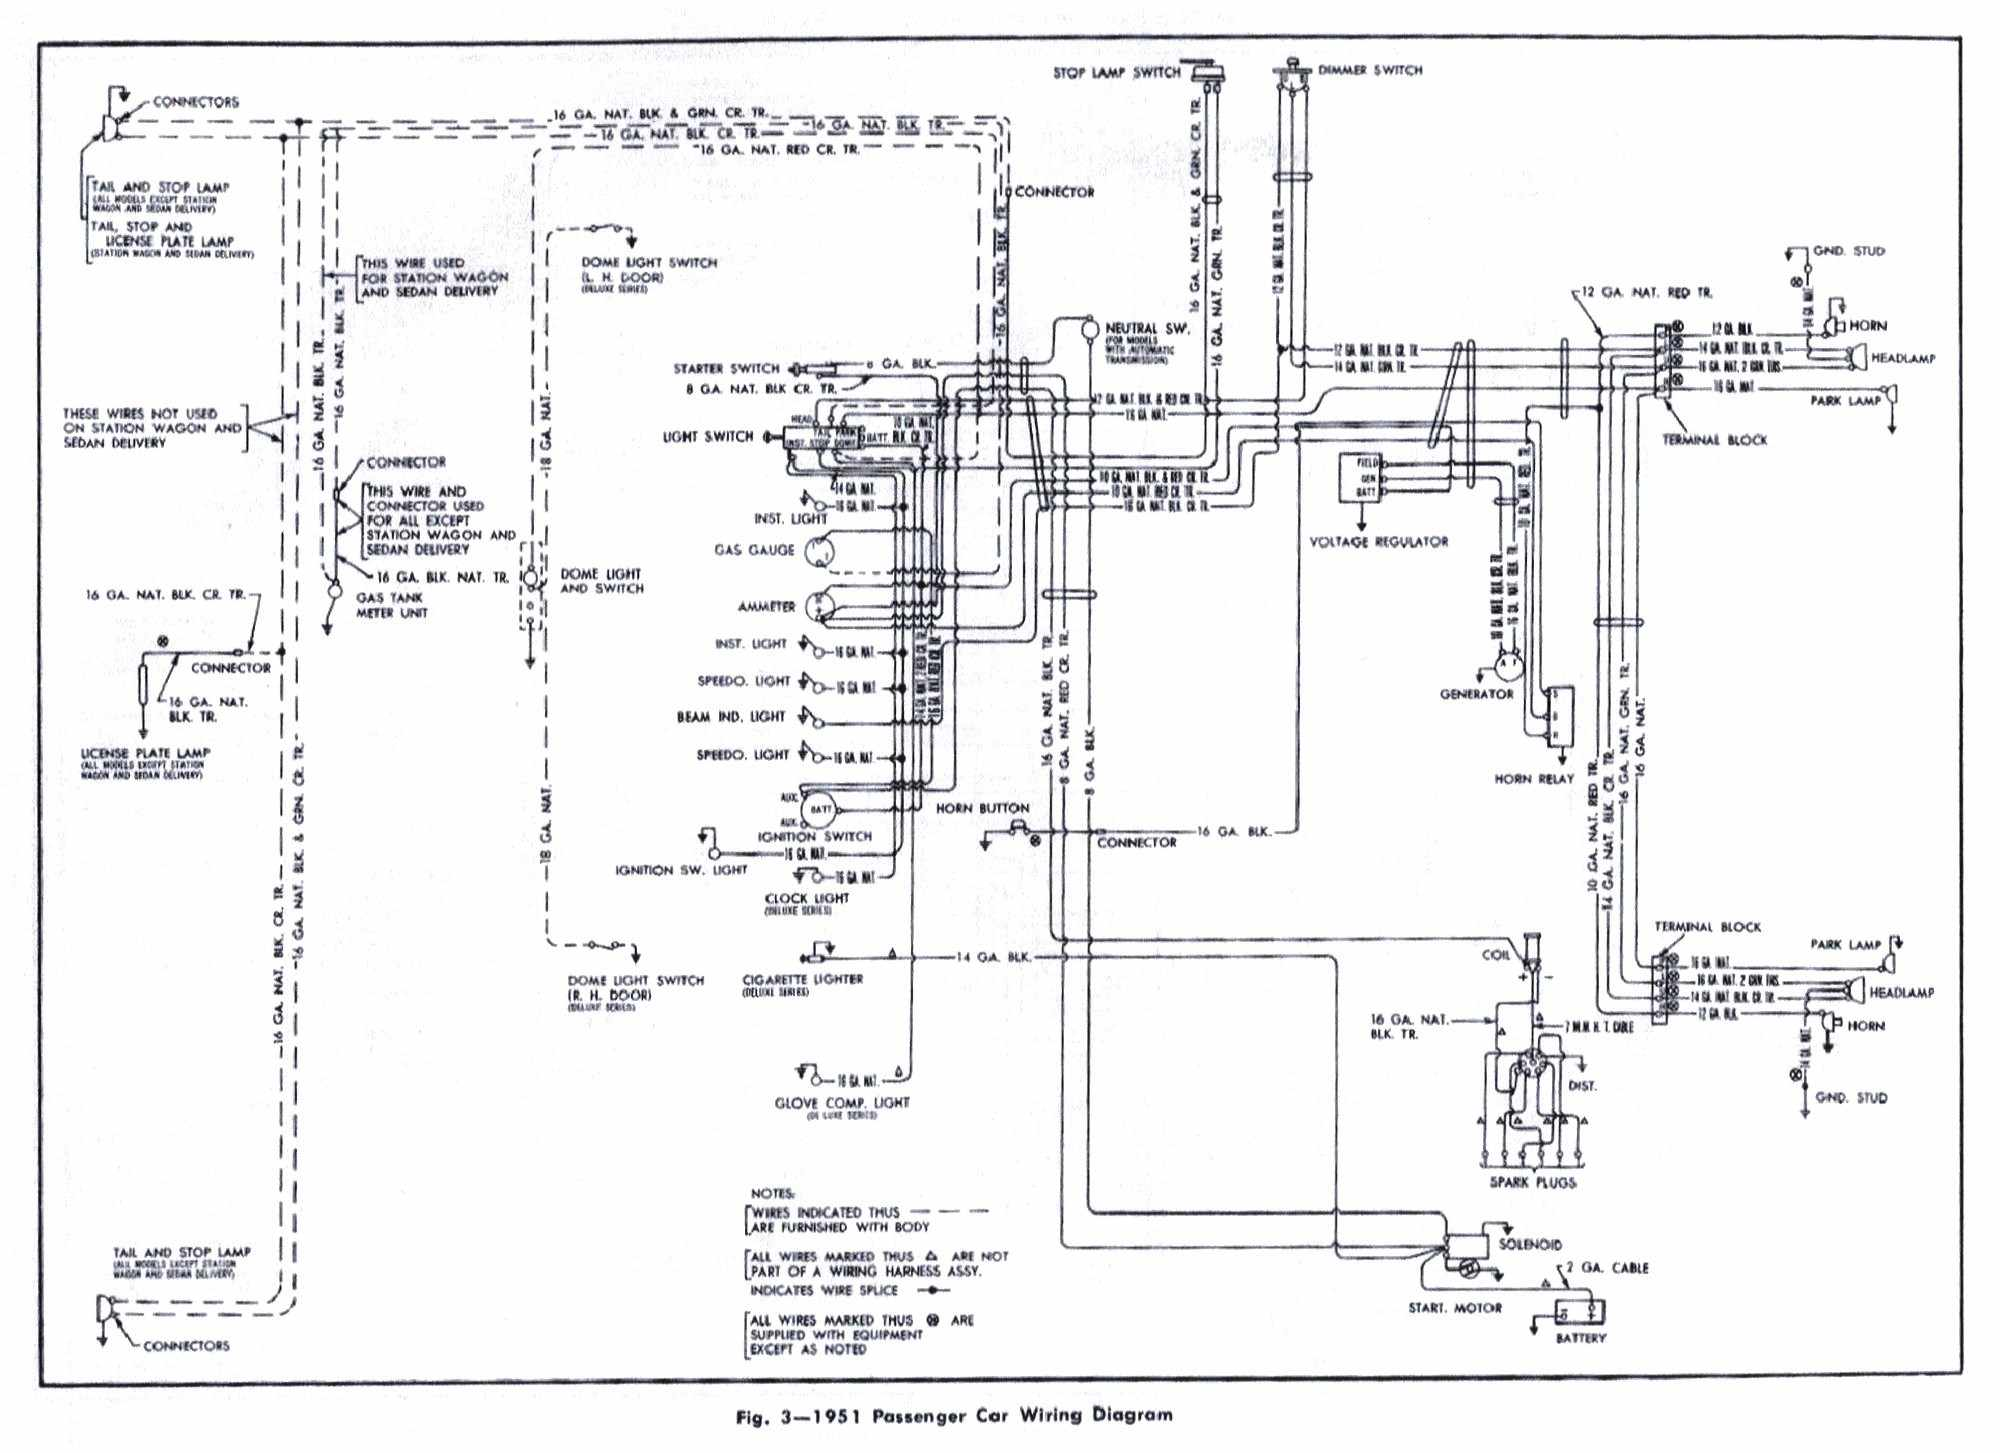 Chevrolet Car Manuals Wiring Diagrams Pdf Fault Codes Schematic Download